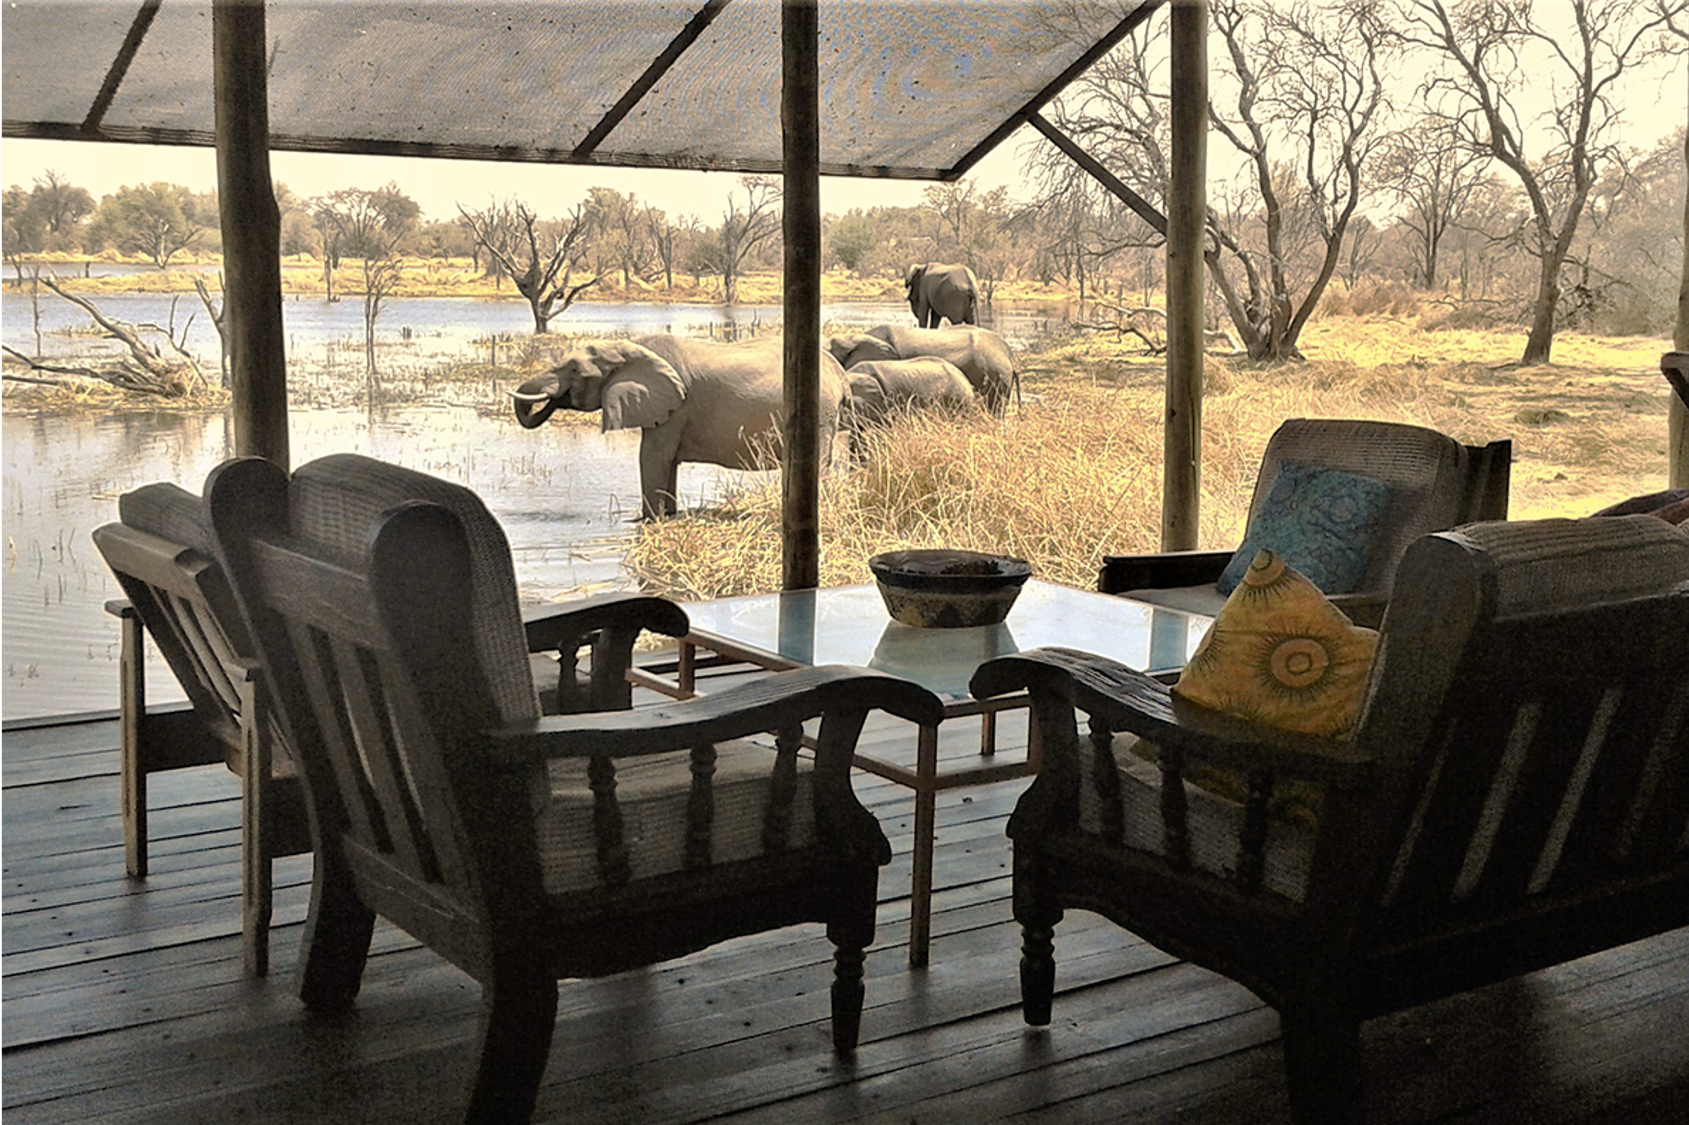 Elephants from deck